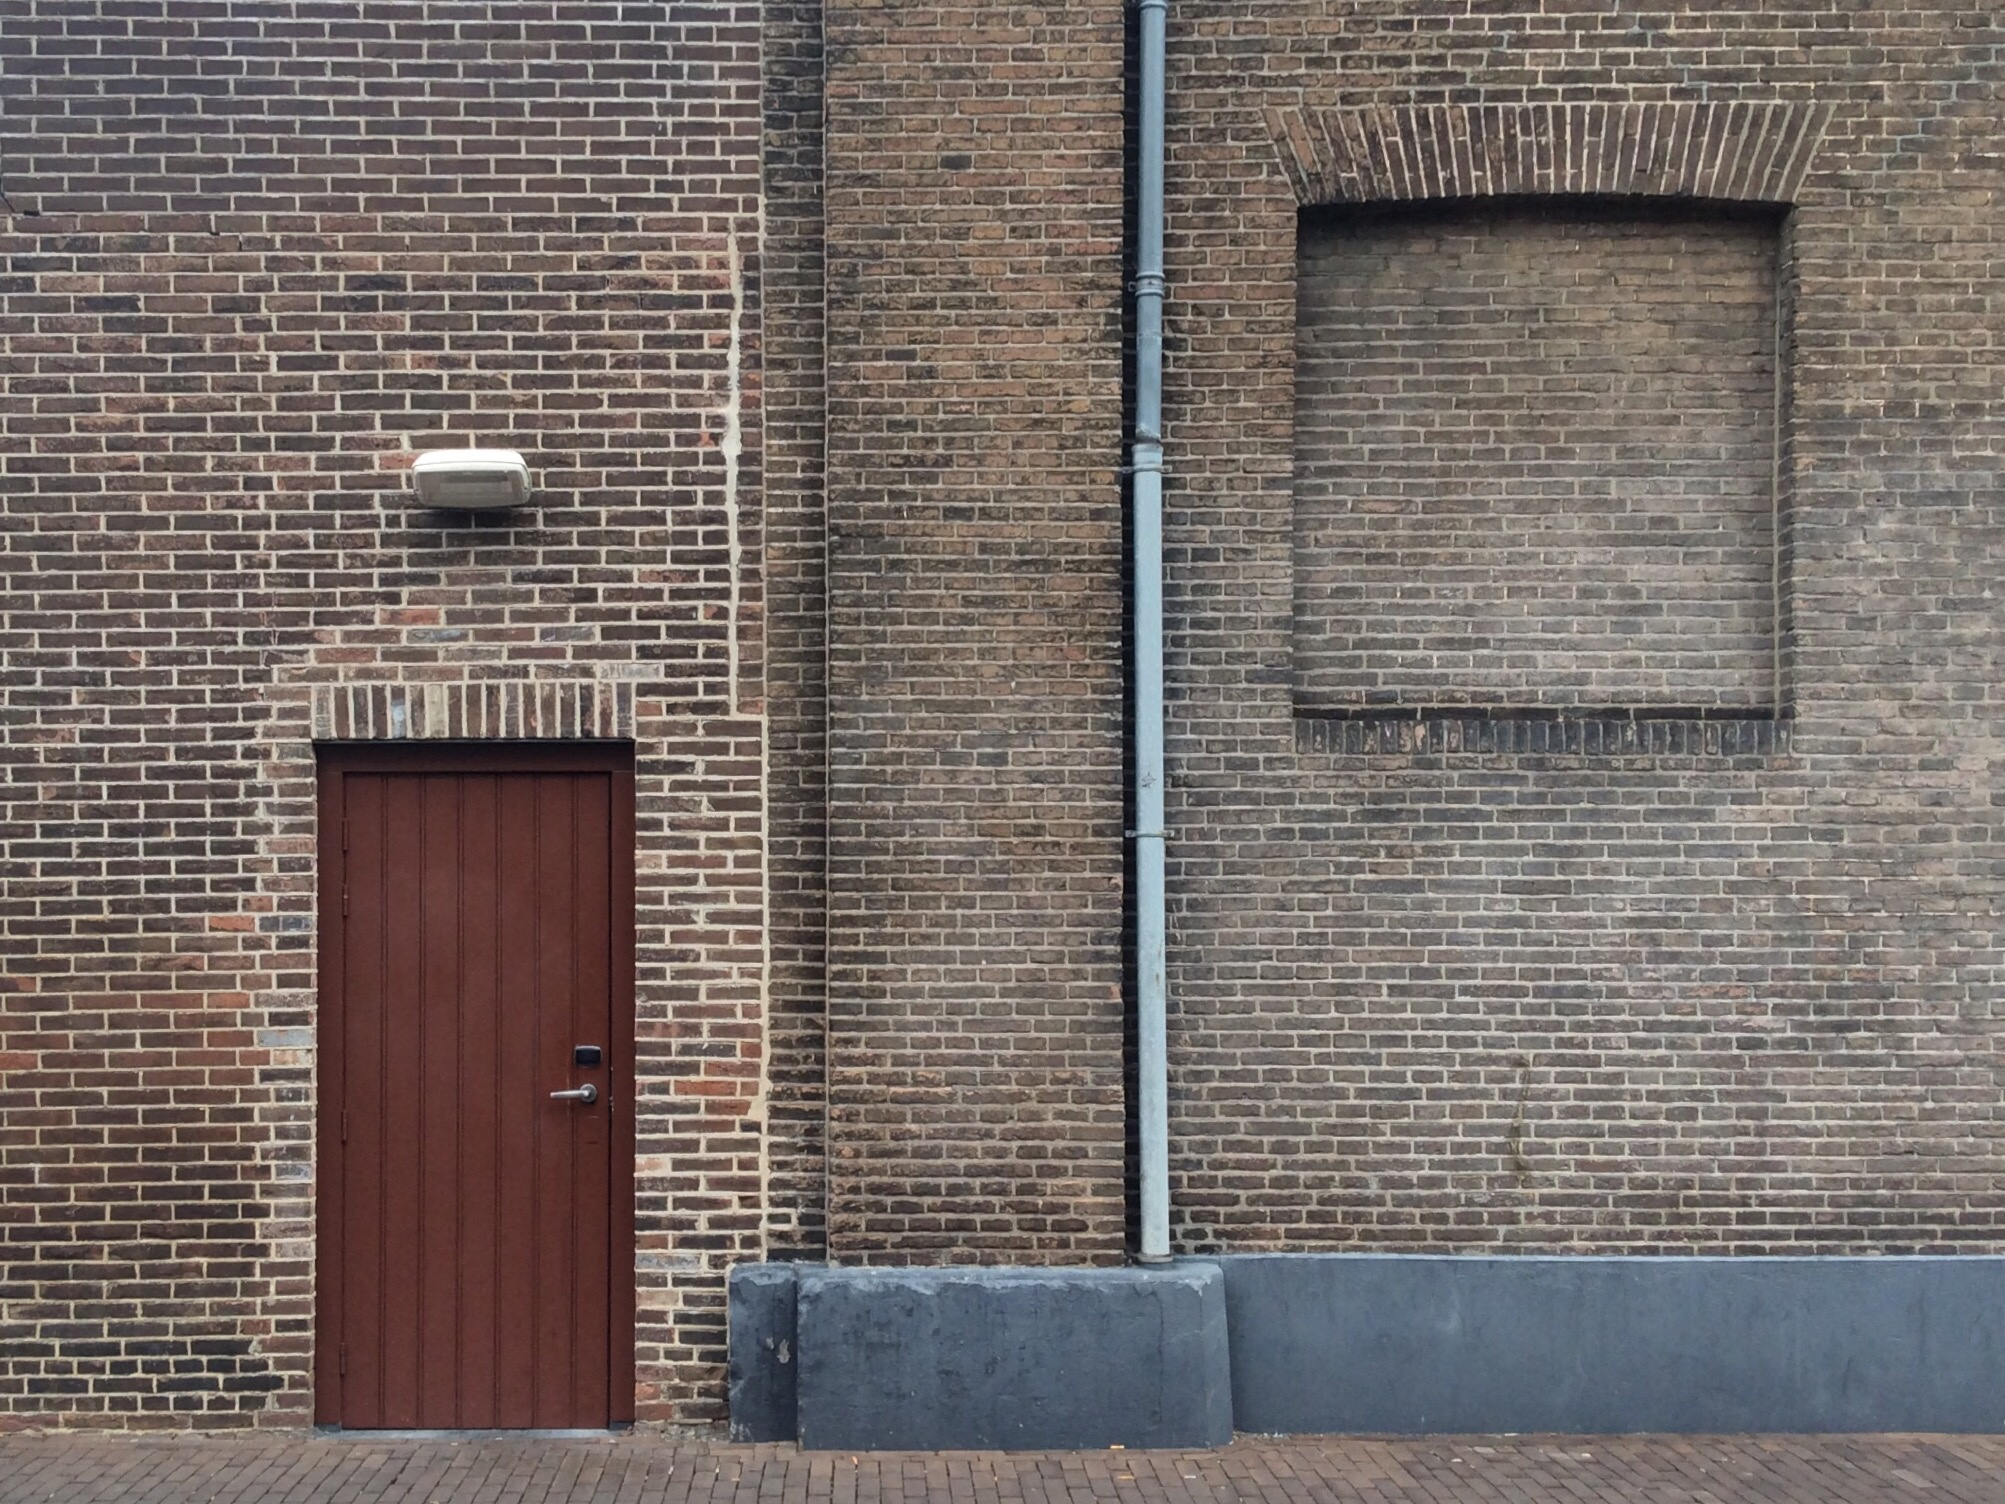 Photograph of a door in a brick wall from Joost Markerink on Flickr